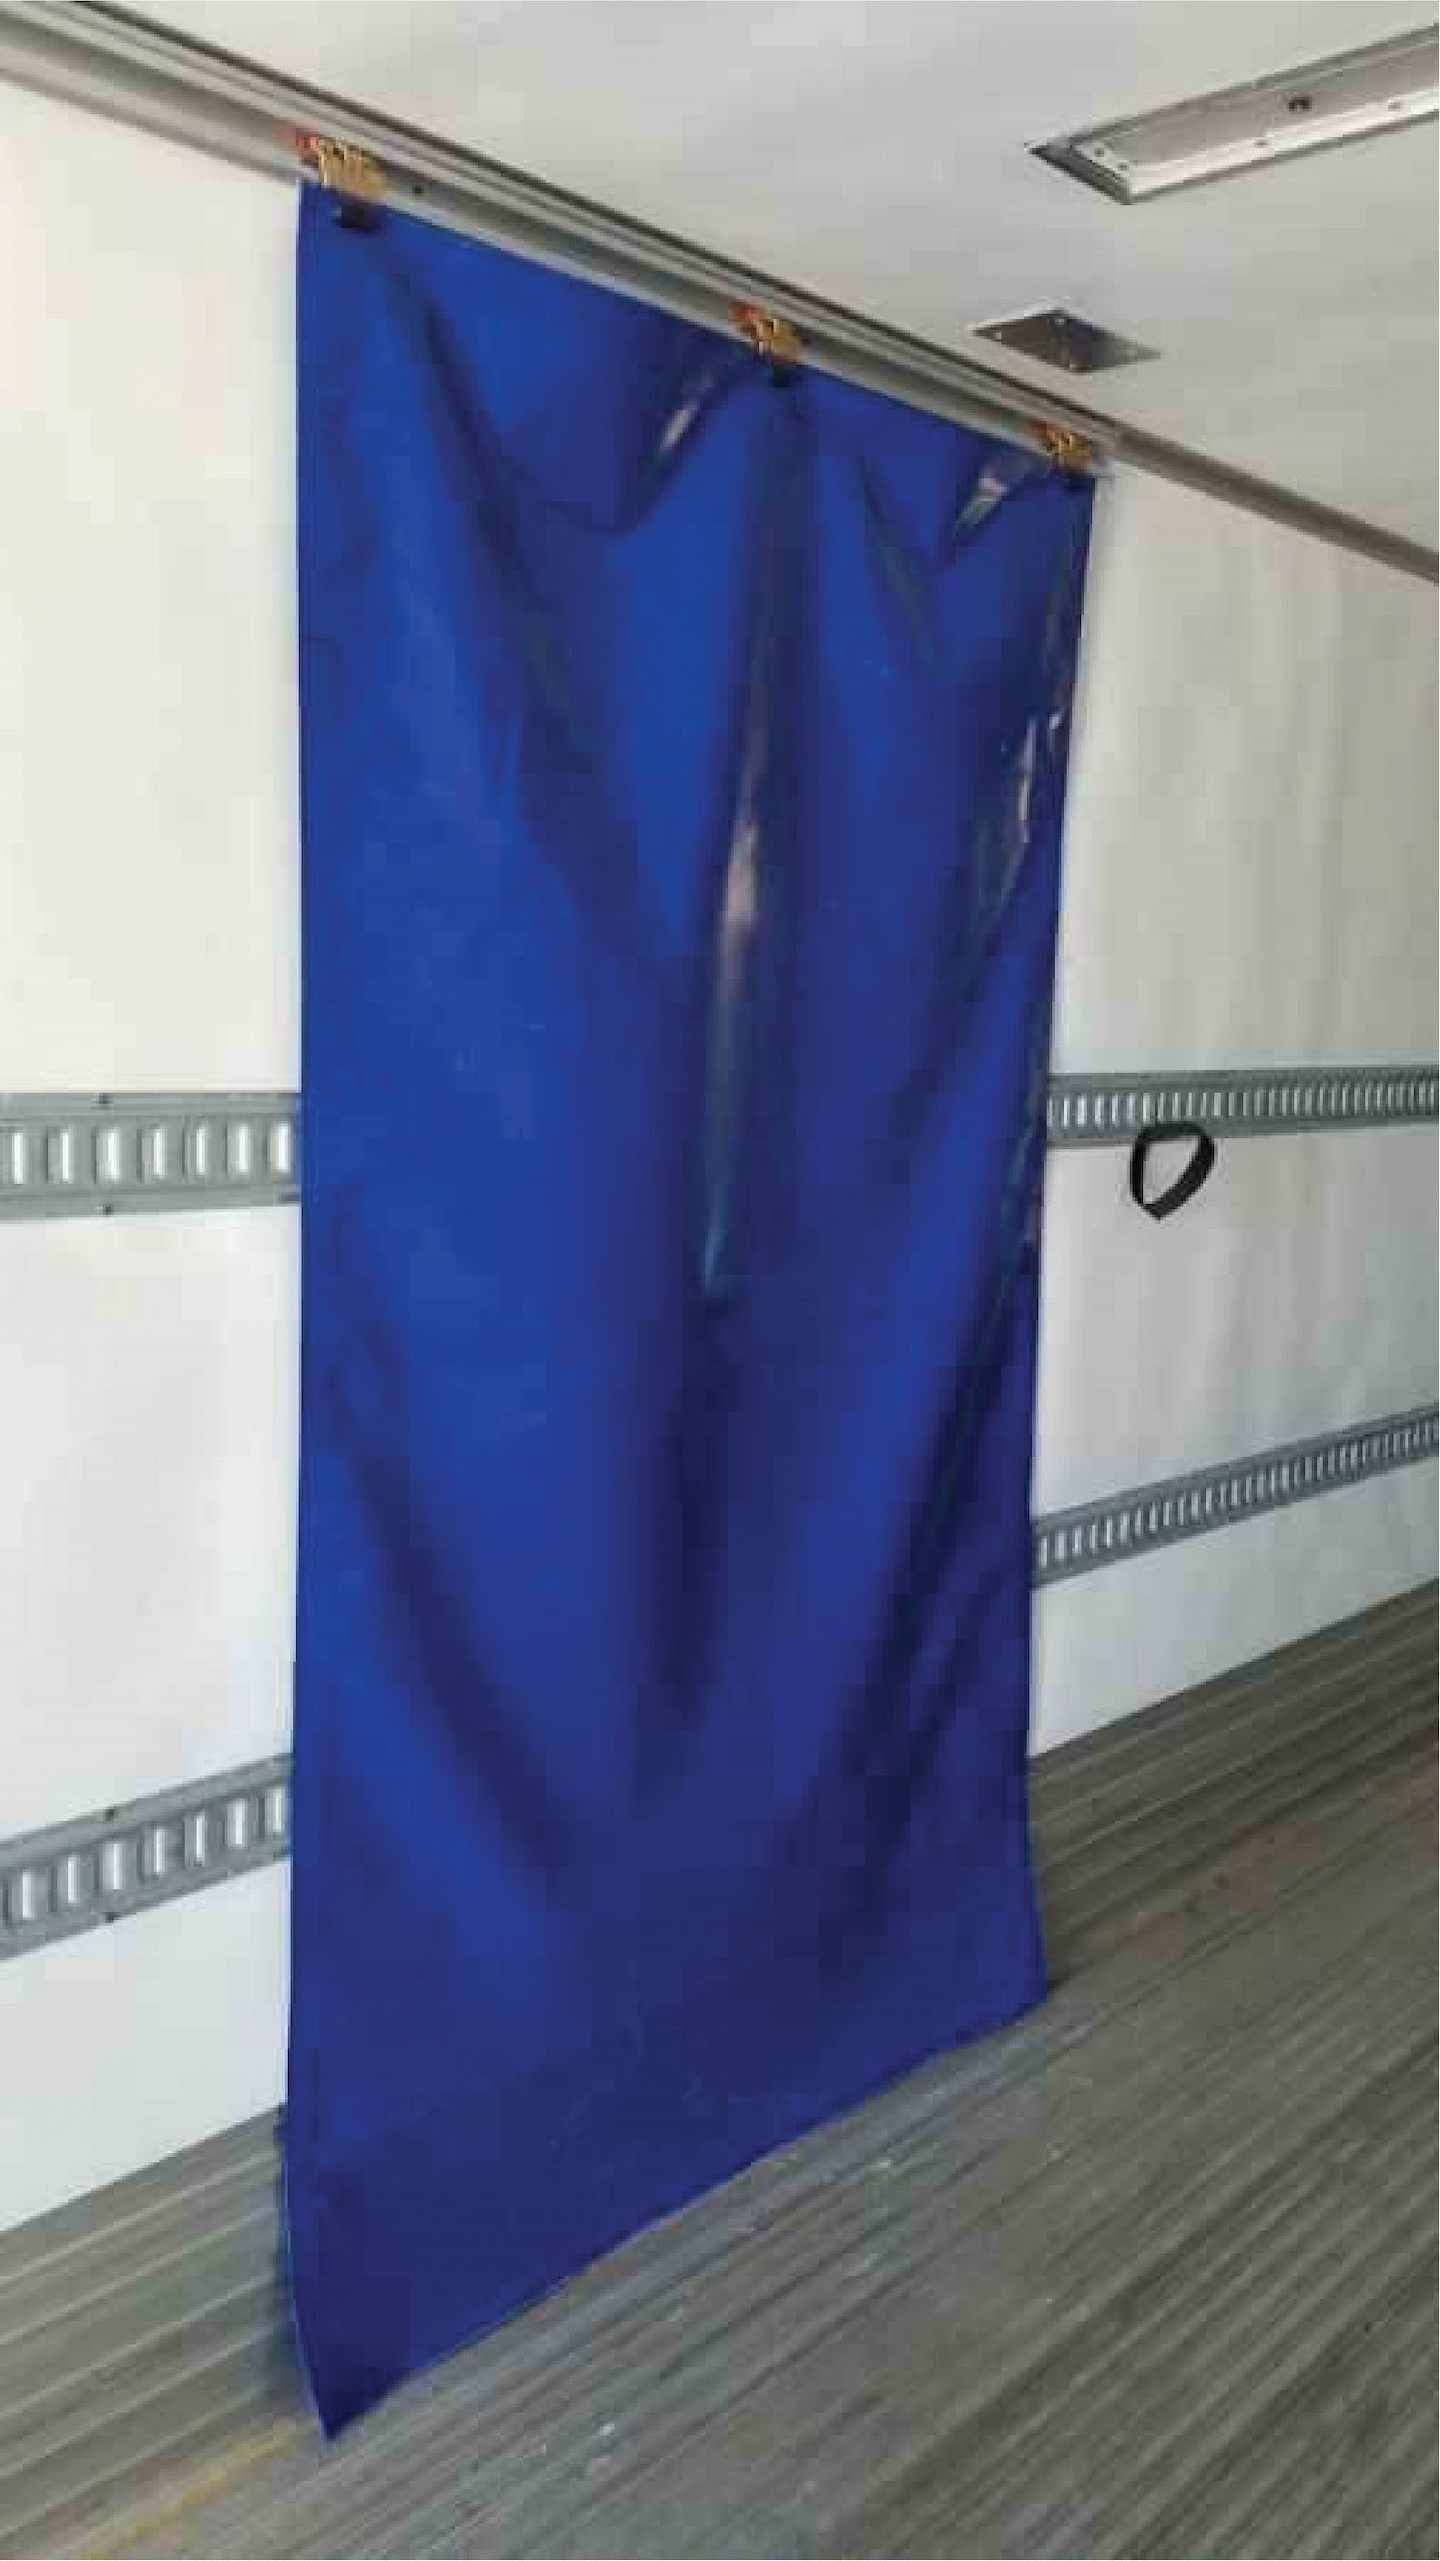 The Kold-Front Refrigerated Curtain System kit includes an 84-inch Kin-Slider aluminum roller track; three five-wheel rollers; standard-sized 26 oz. PVC commercial-grade curtain – 60 inches wide by 102 inches long, ballast-weighted; and four hook and loop fasteners.